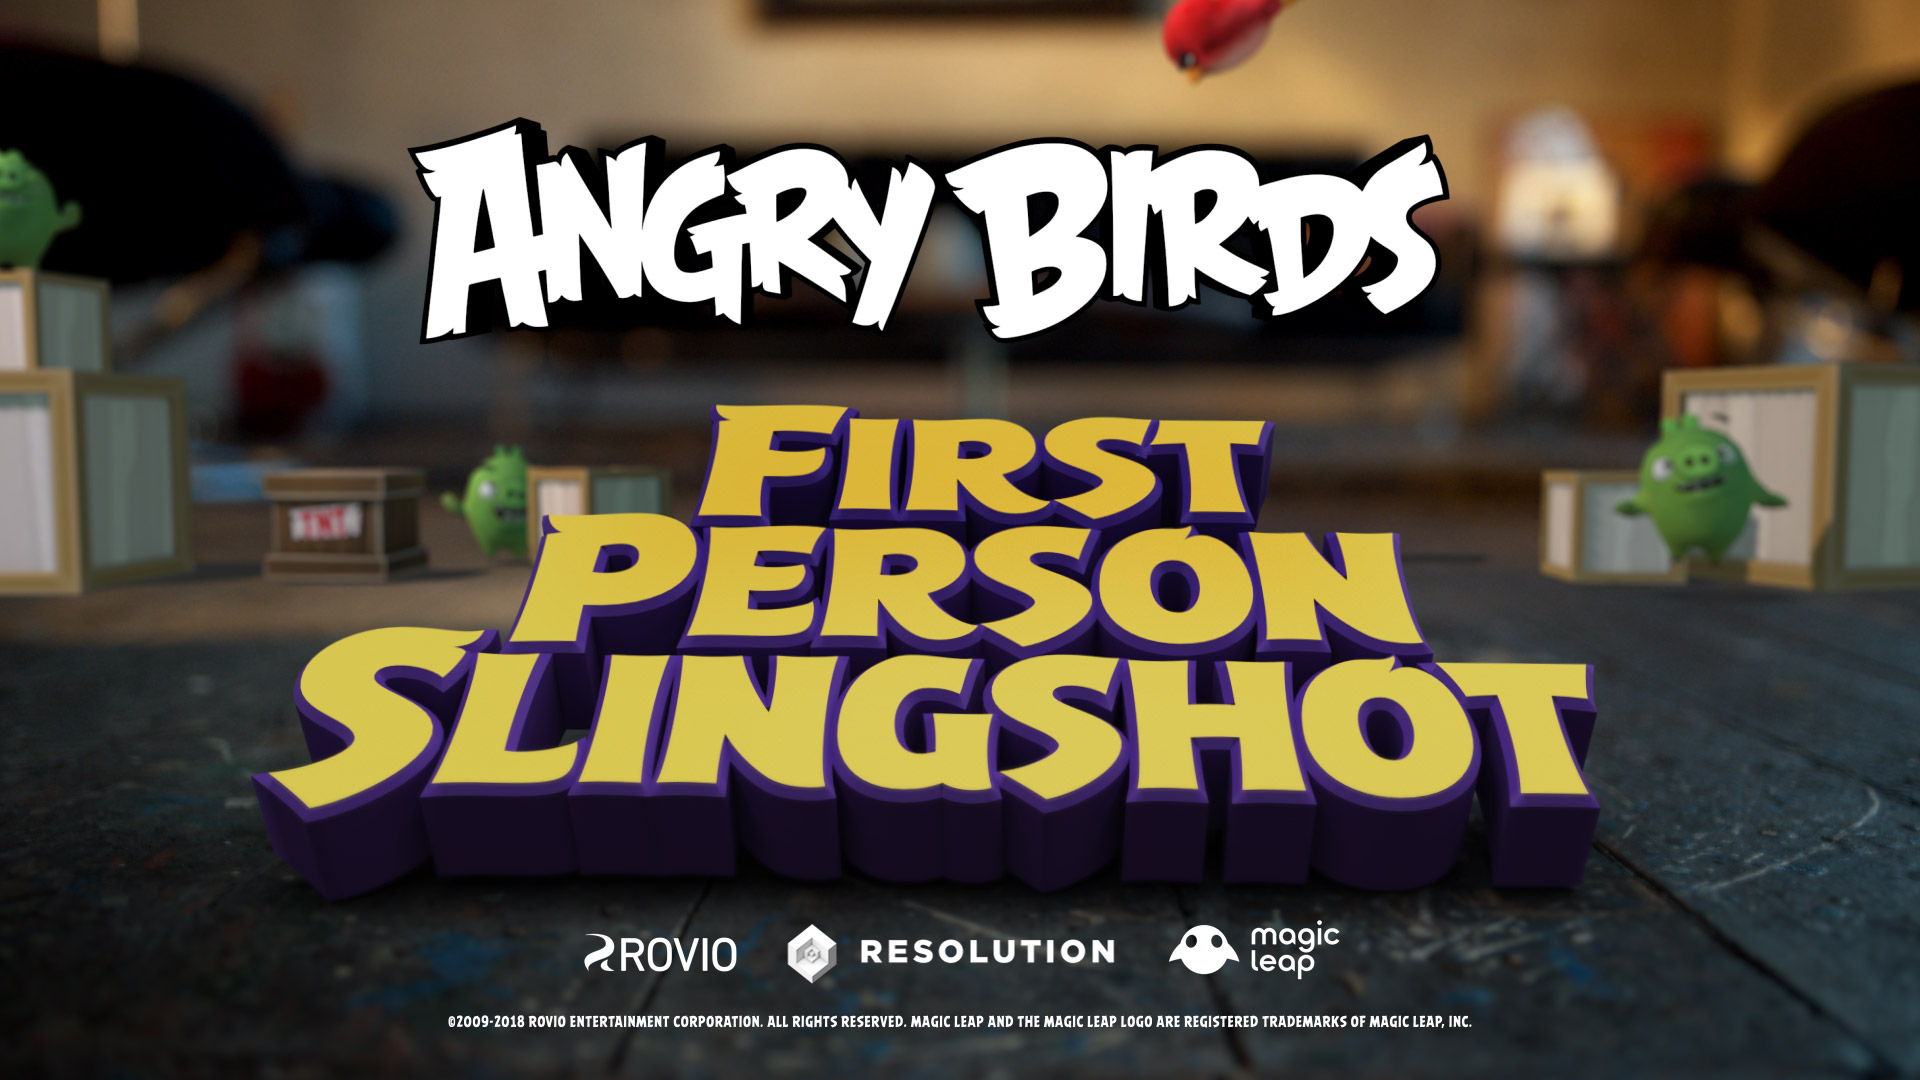 Reality gets mixed in Angry Birds FPS: First Person Slingshot